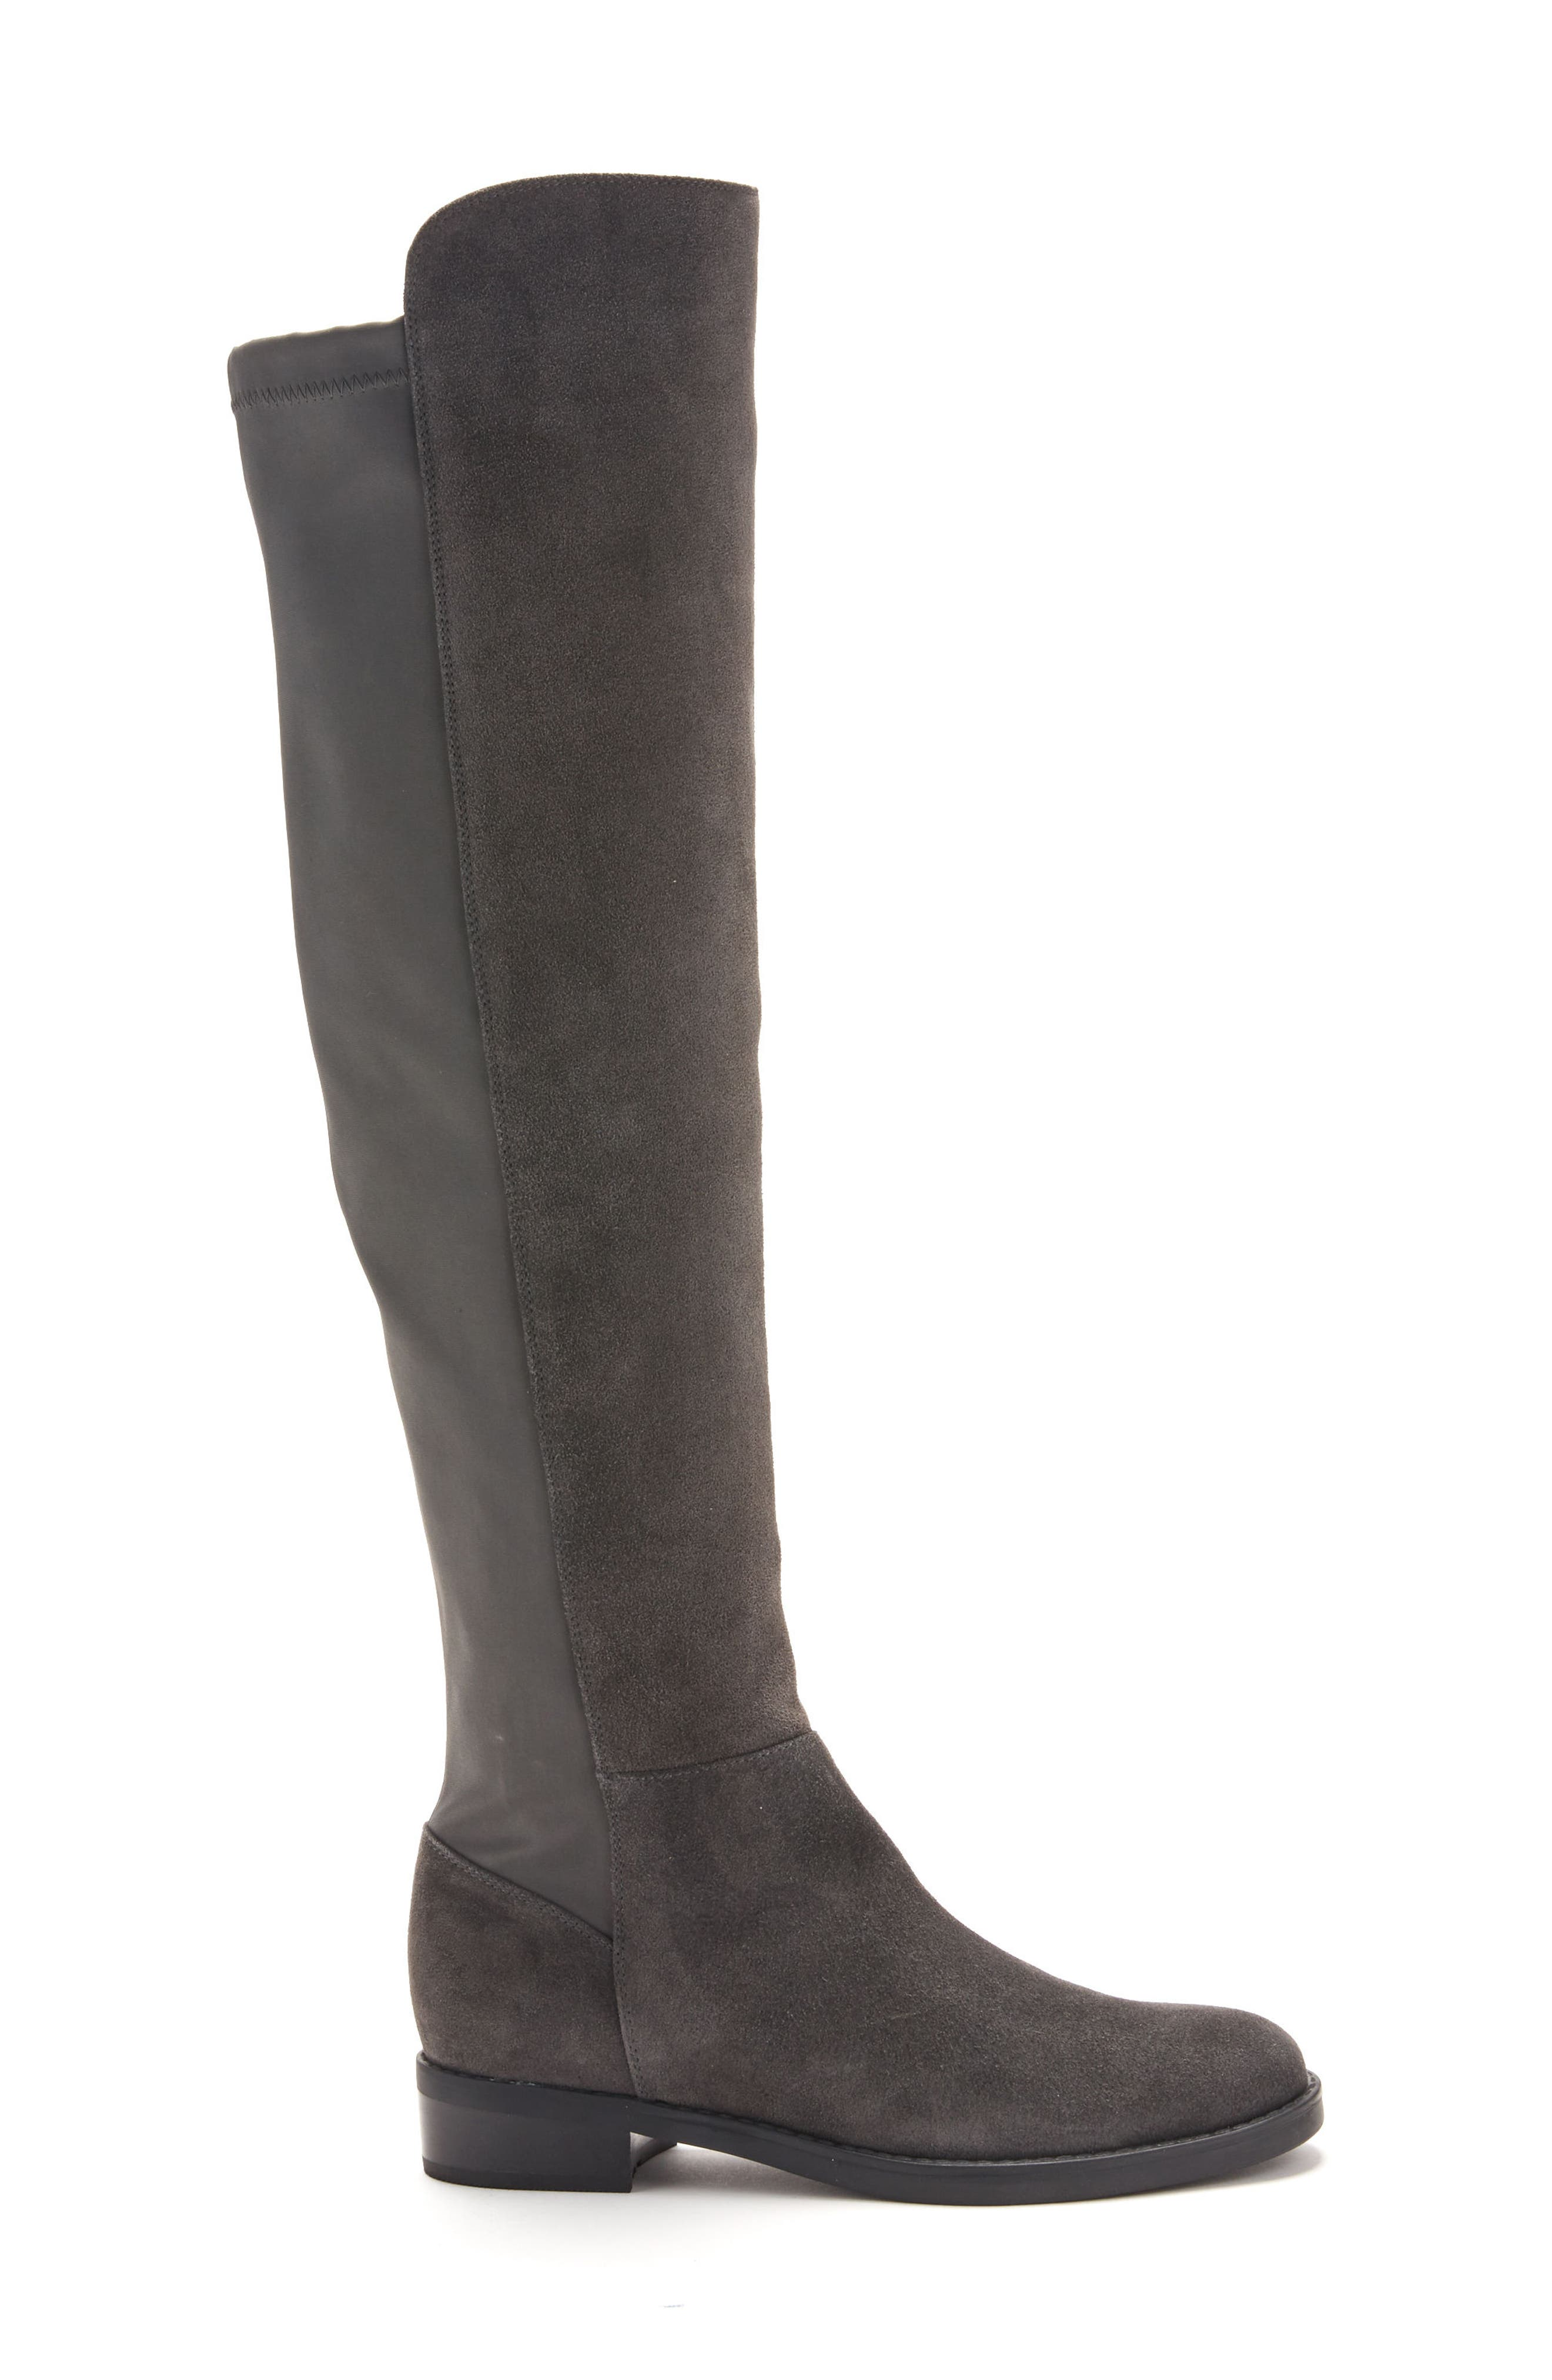 Olivia Knee High Boot,                             Alternate thumbnail 3, color,                             Grey Suede